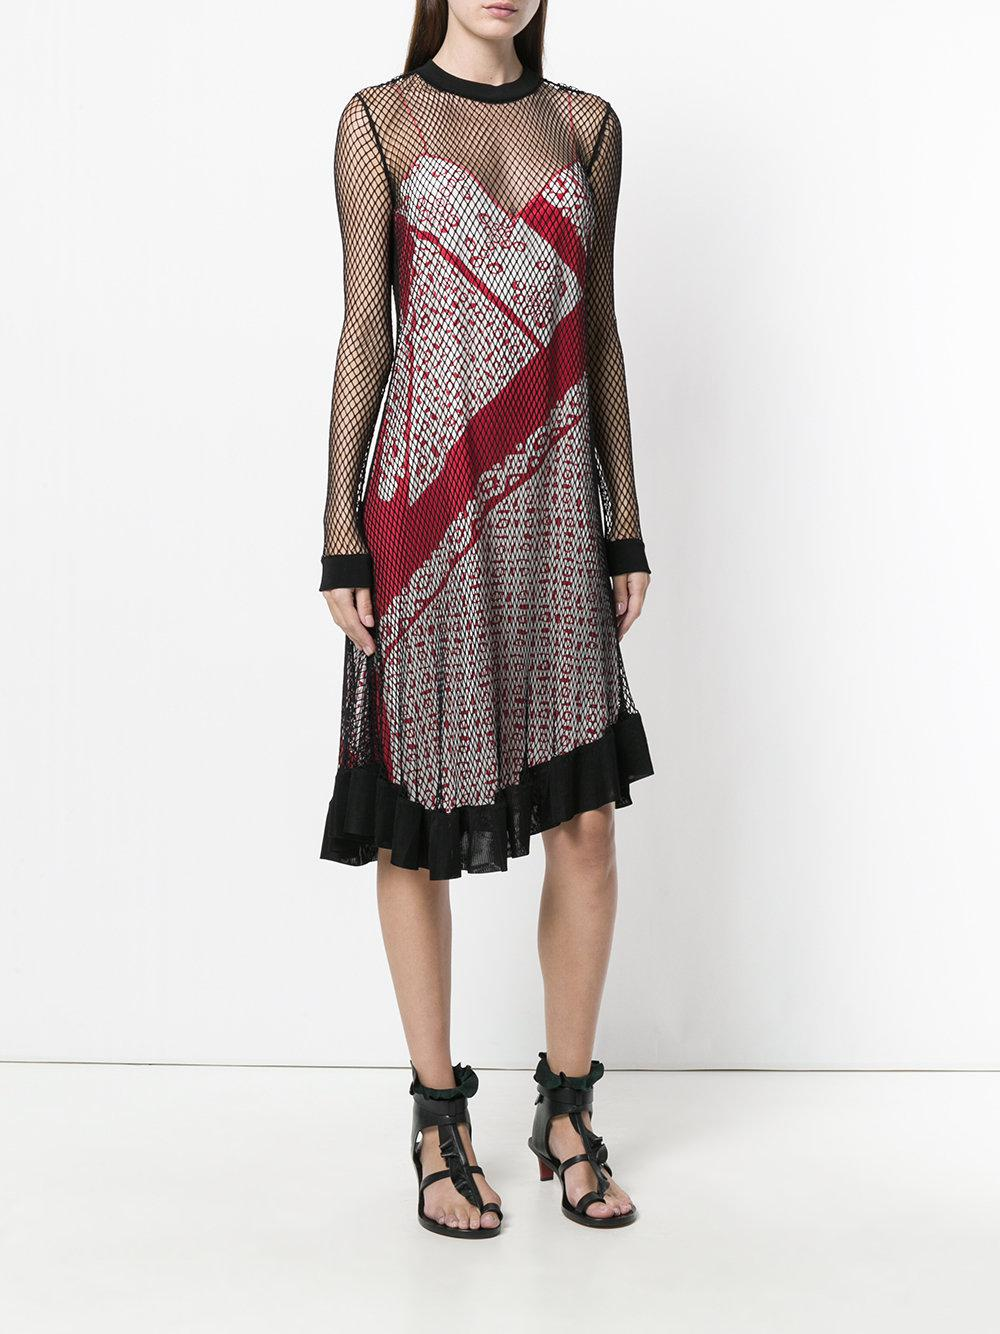 engineered animal stripe print cami dress with mesh overlayer - Multicolour Altuzarra b4V3CezfpZ